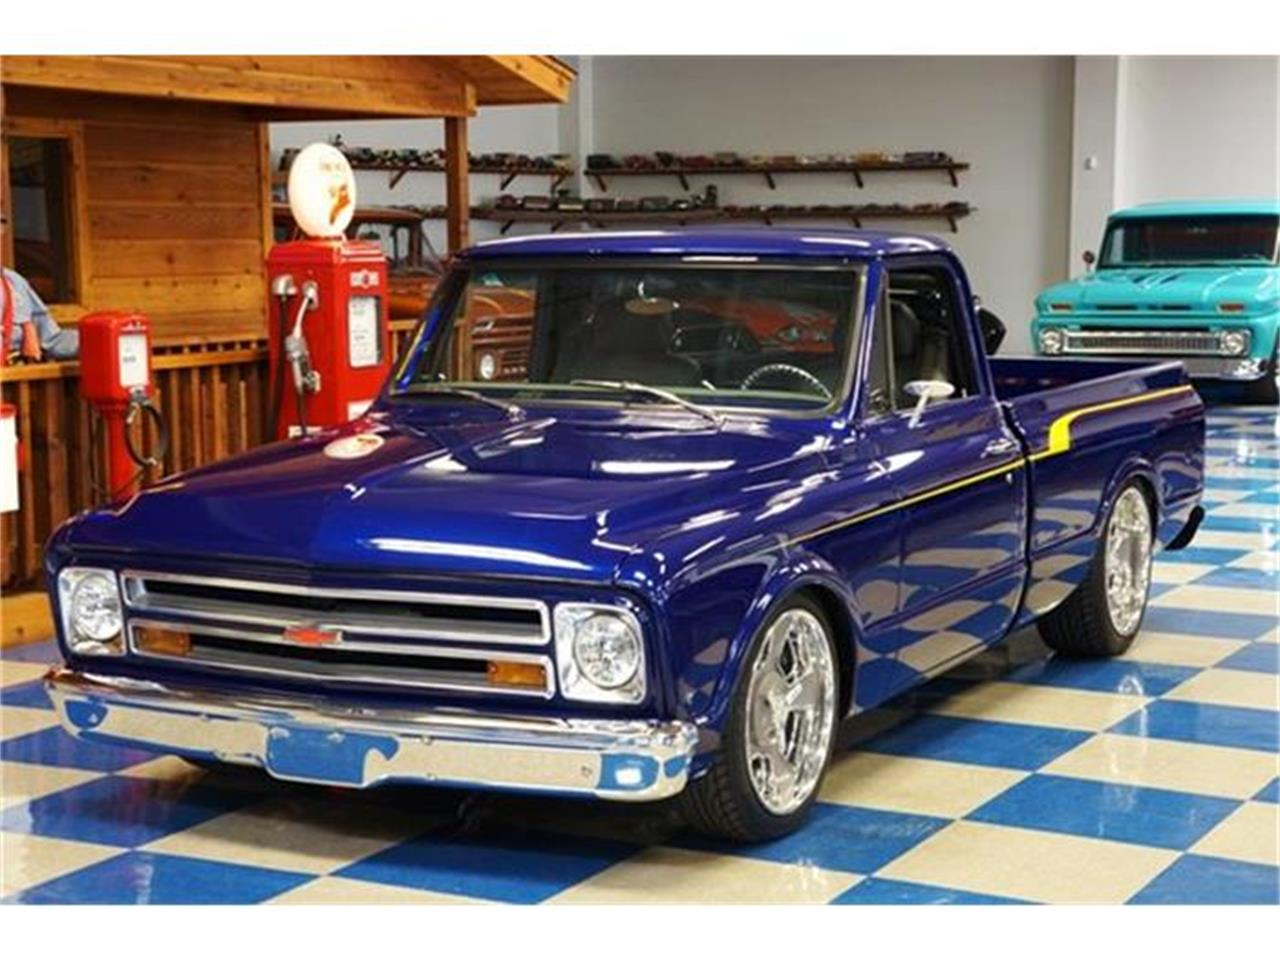 57 chevy convertibles for sale in texas autos post. Black Bedroom Furniture Sets. Home Design Ideas